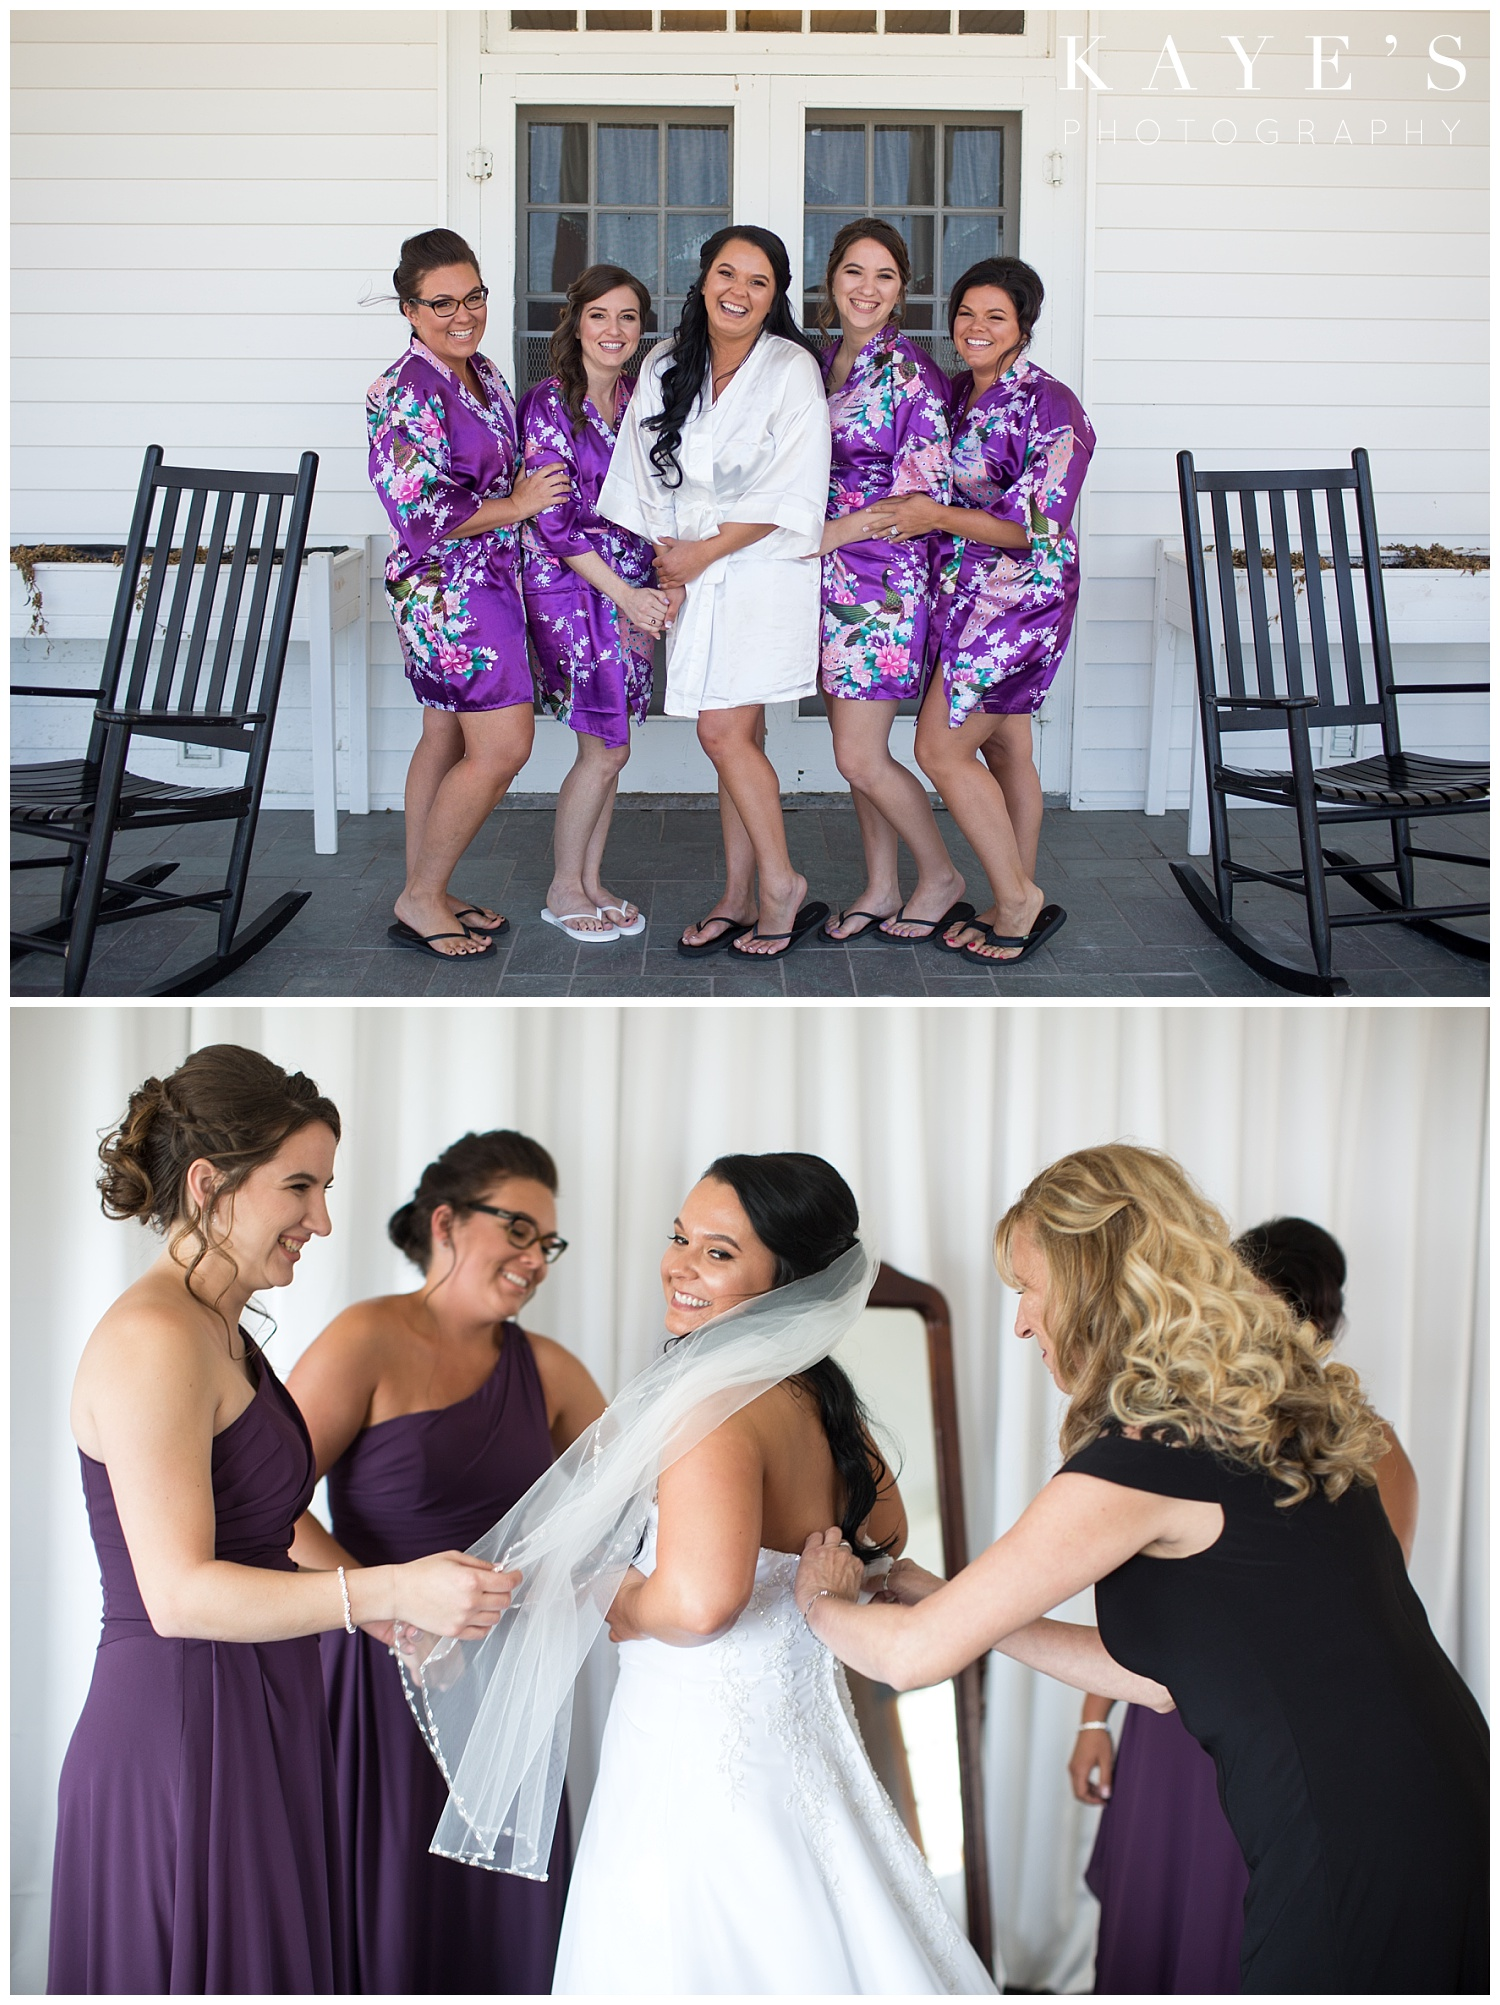 bride and bridesmaid in purple robes at waldenwoods resort